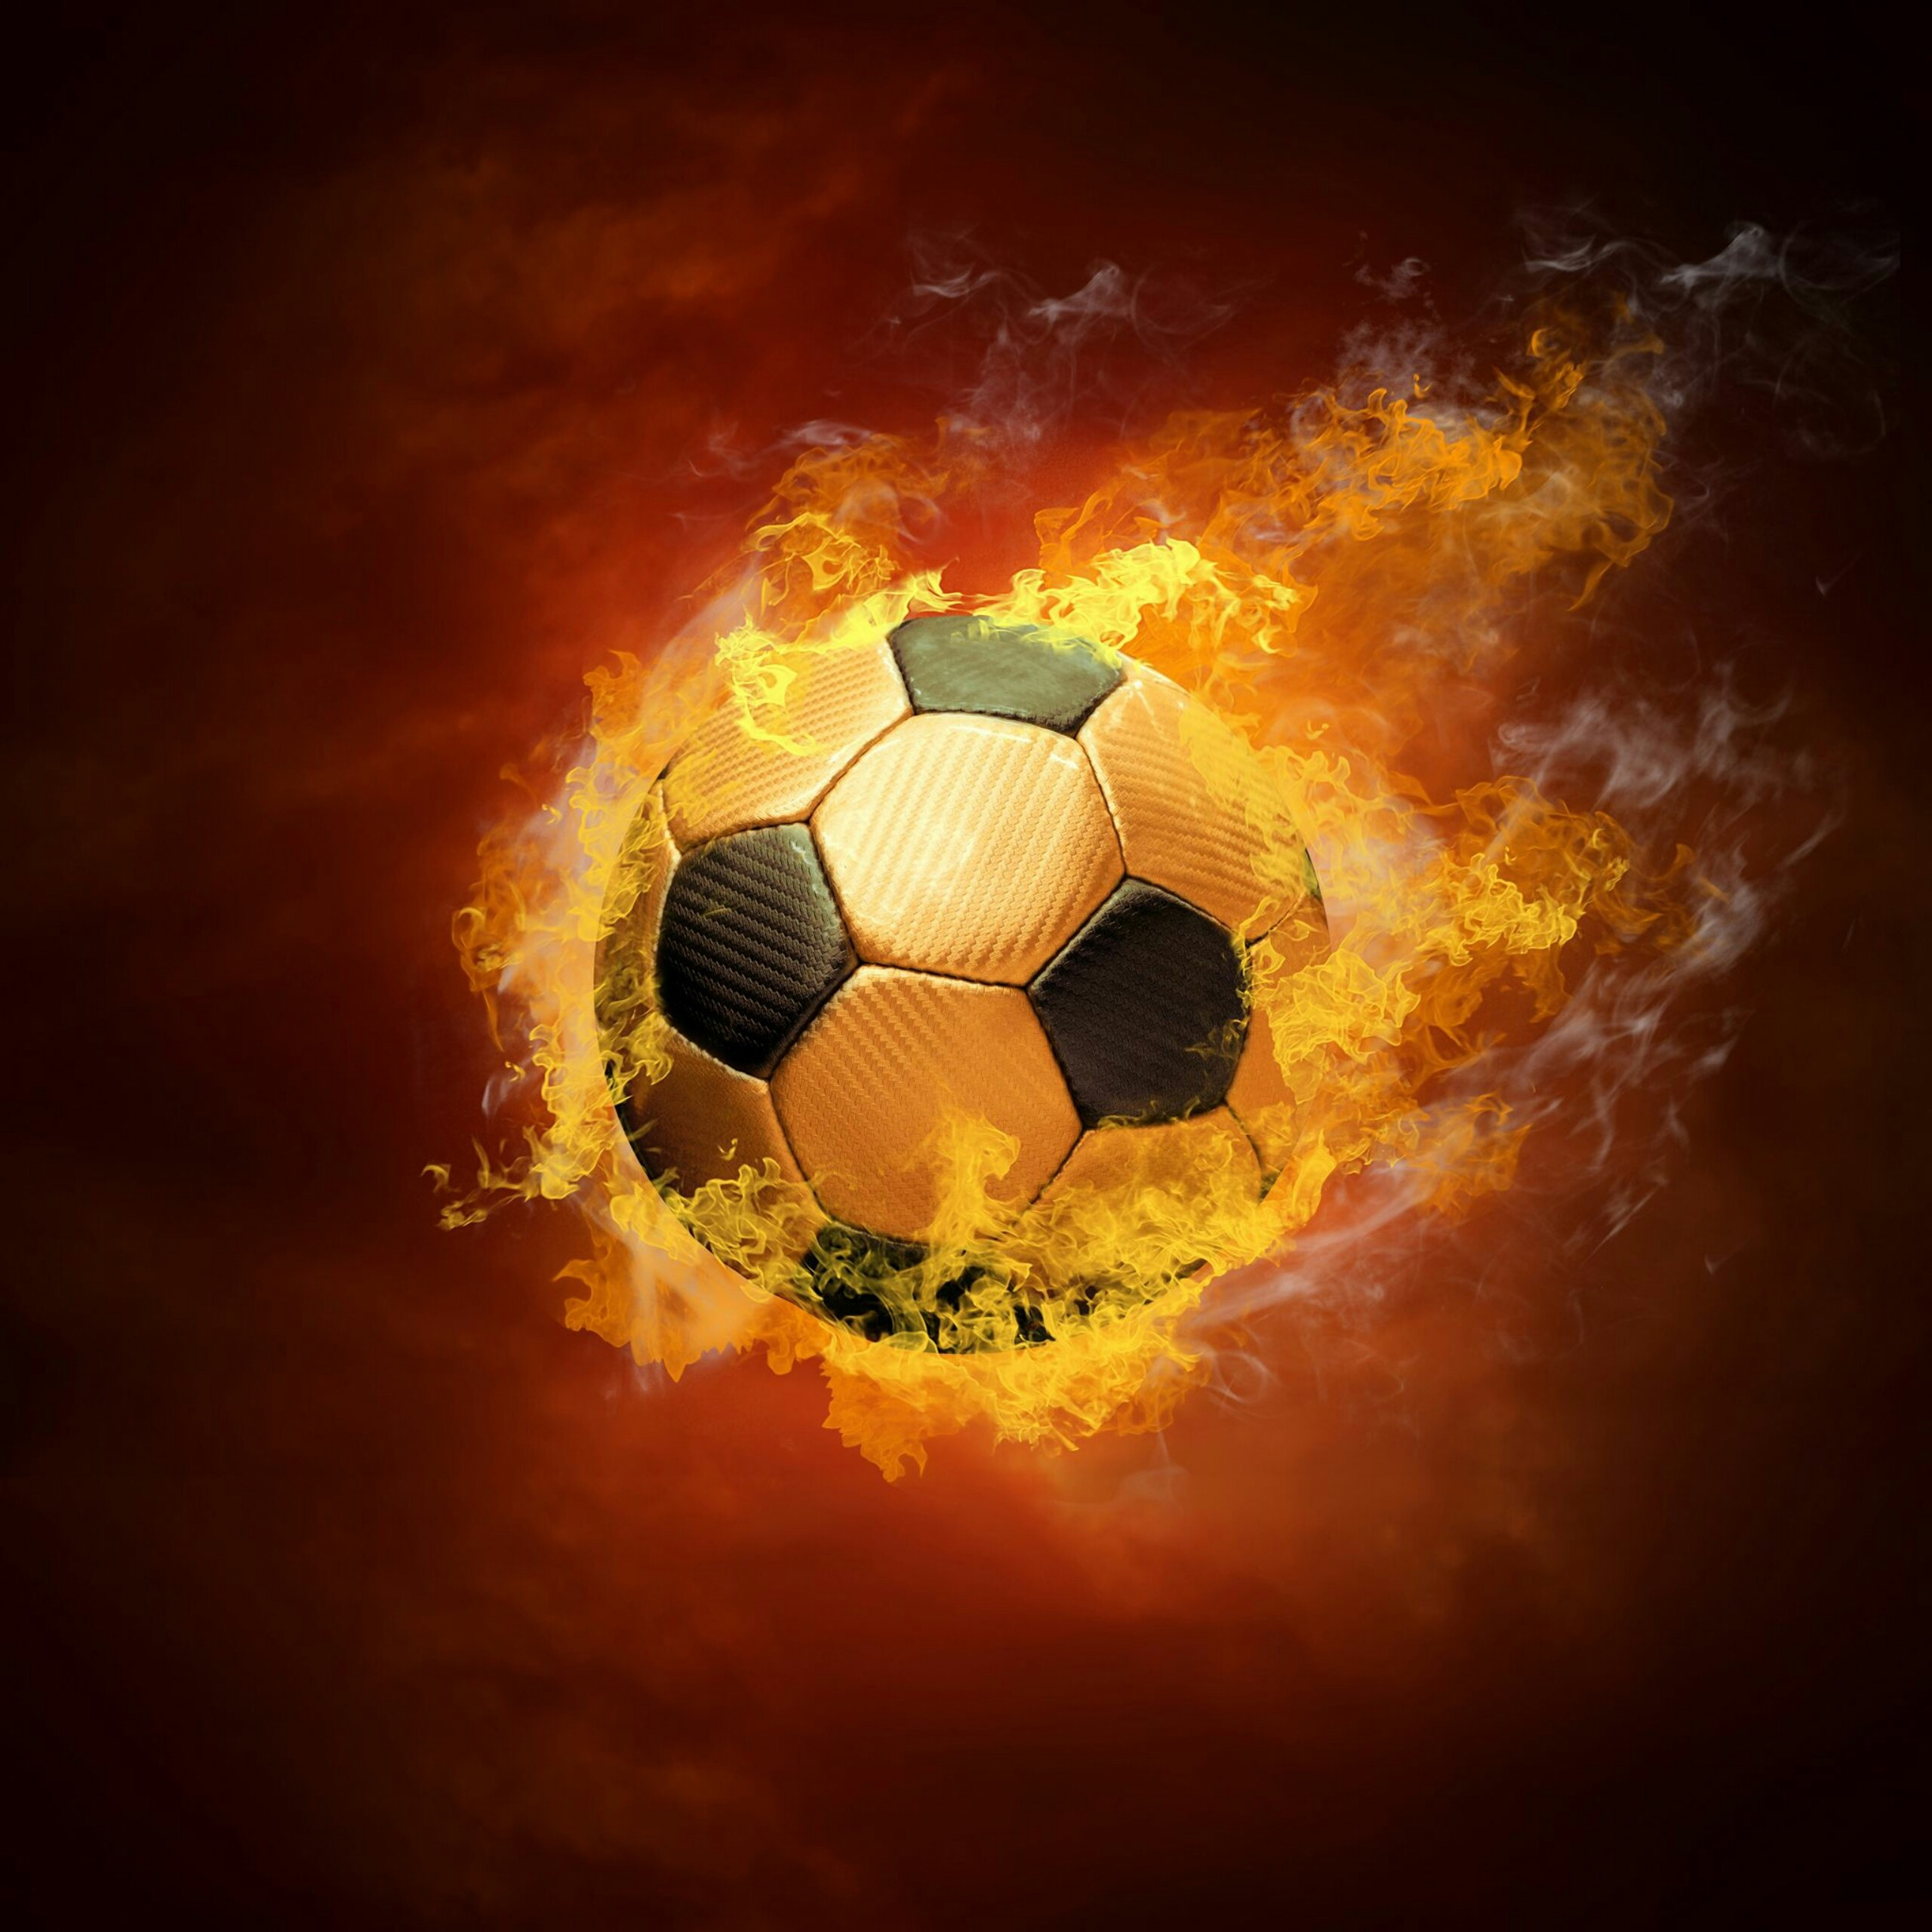 Ball On Fire Soccer Football Sports QHD Wallpaper